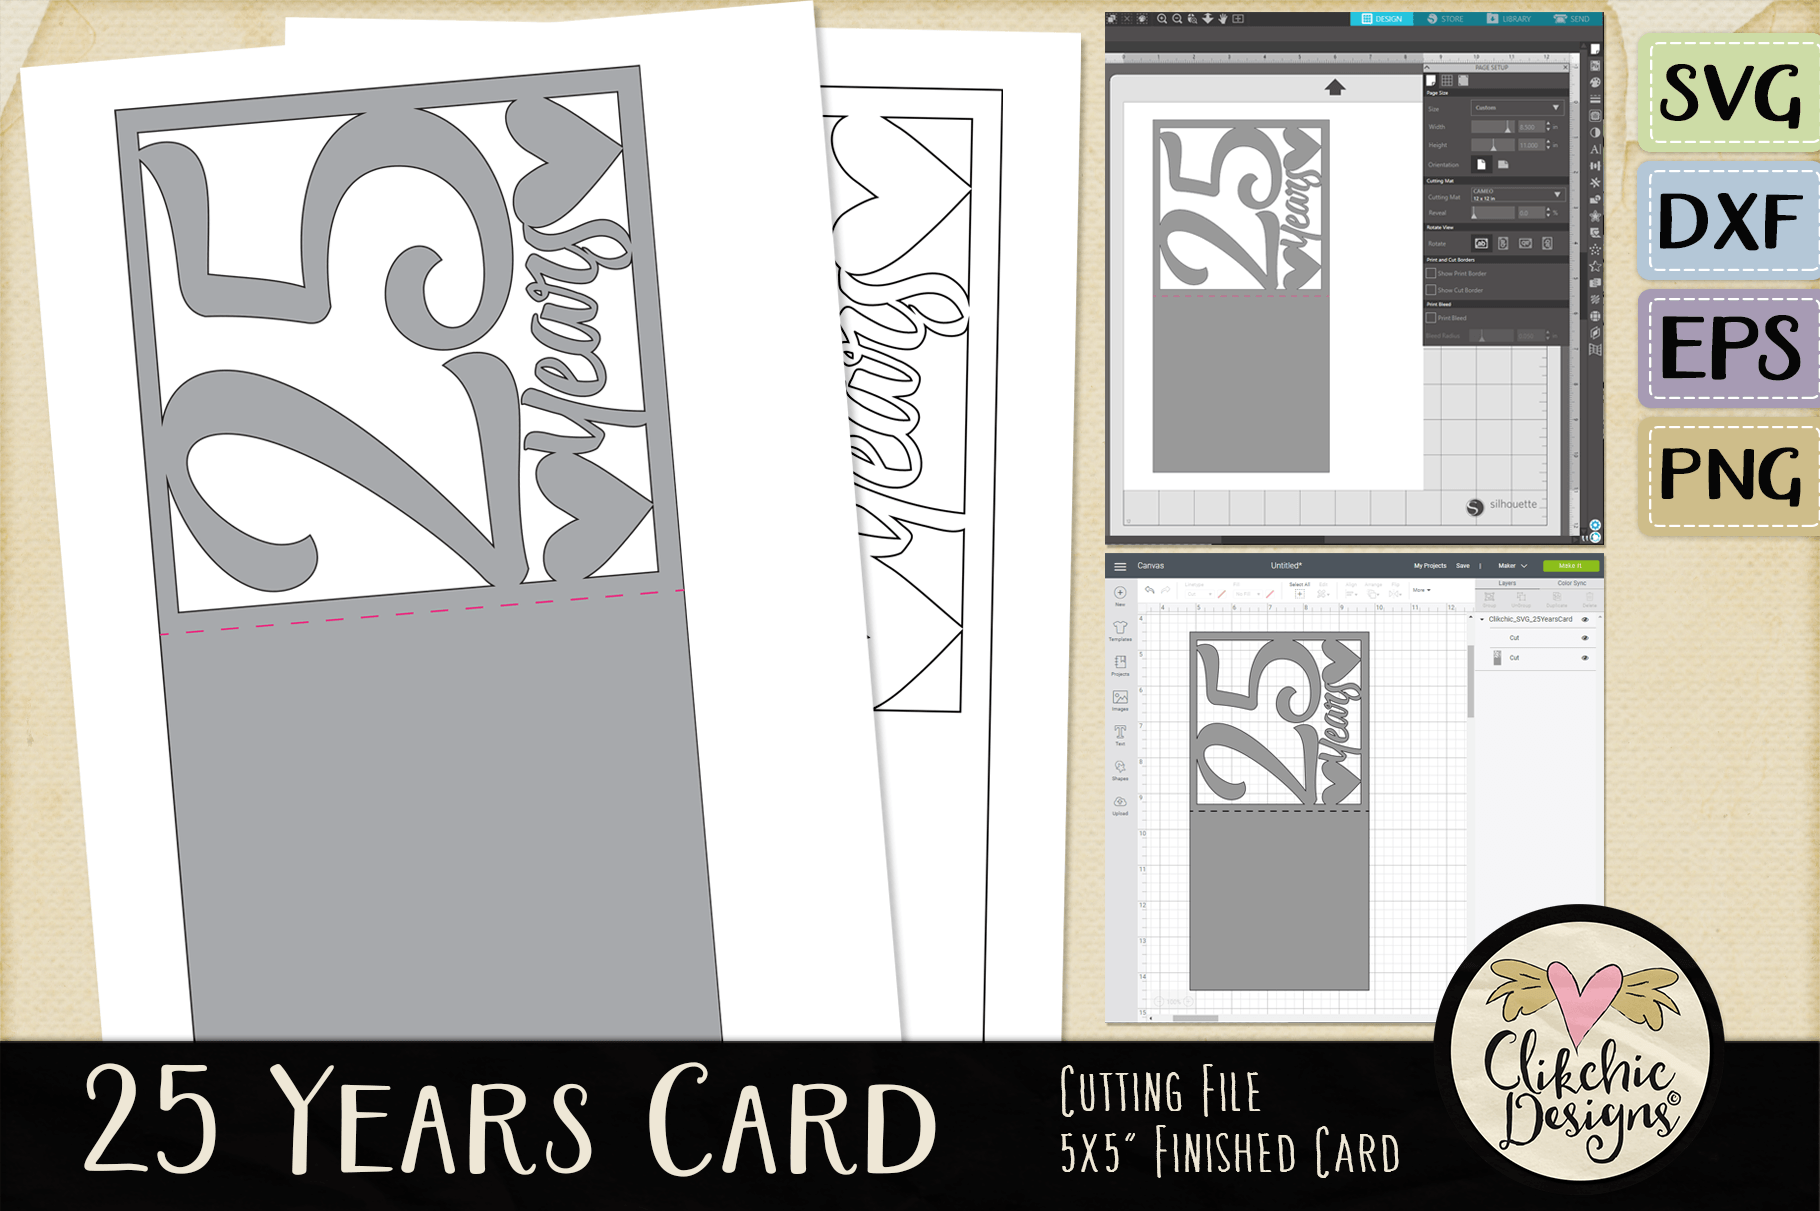 25 Years Anniversary / Birthday Card SVG - Card Cutting File example image 2